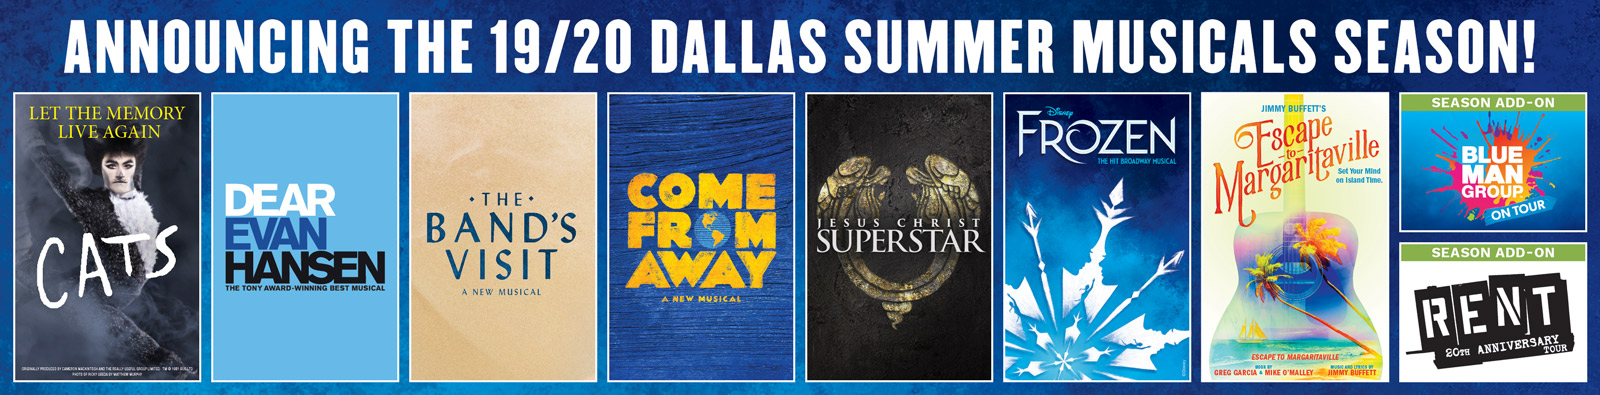 DSM Announcing the 19/20 Dallas Summer Musicals Season